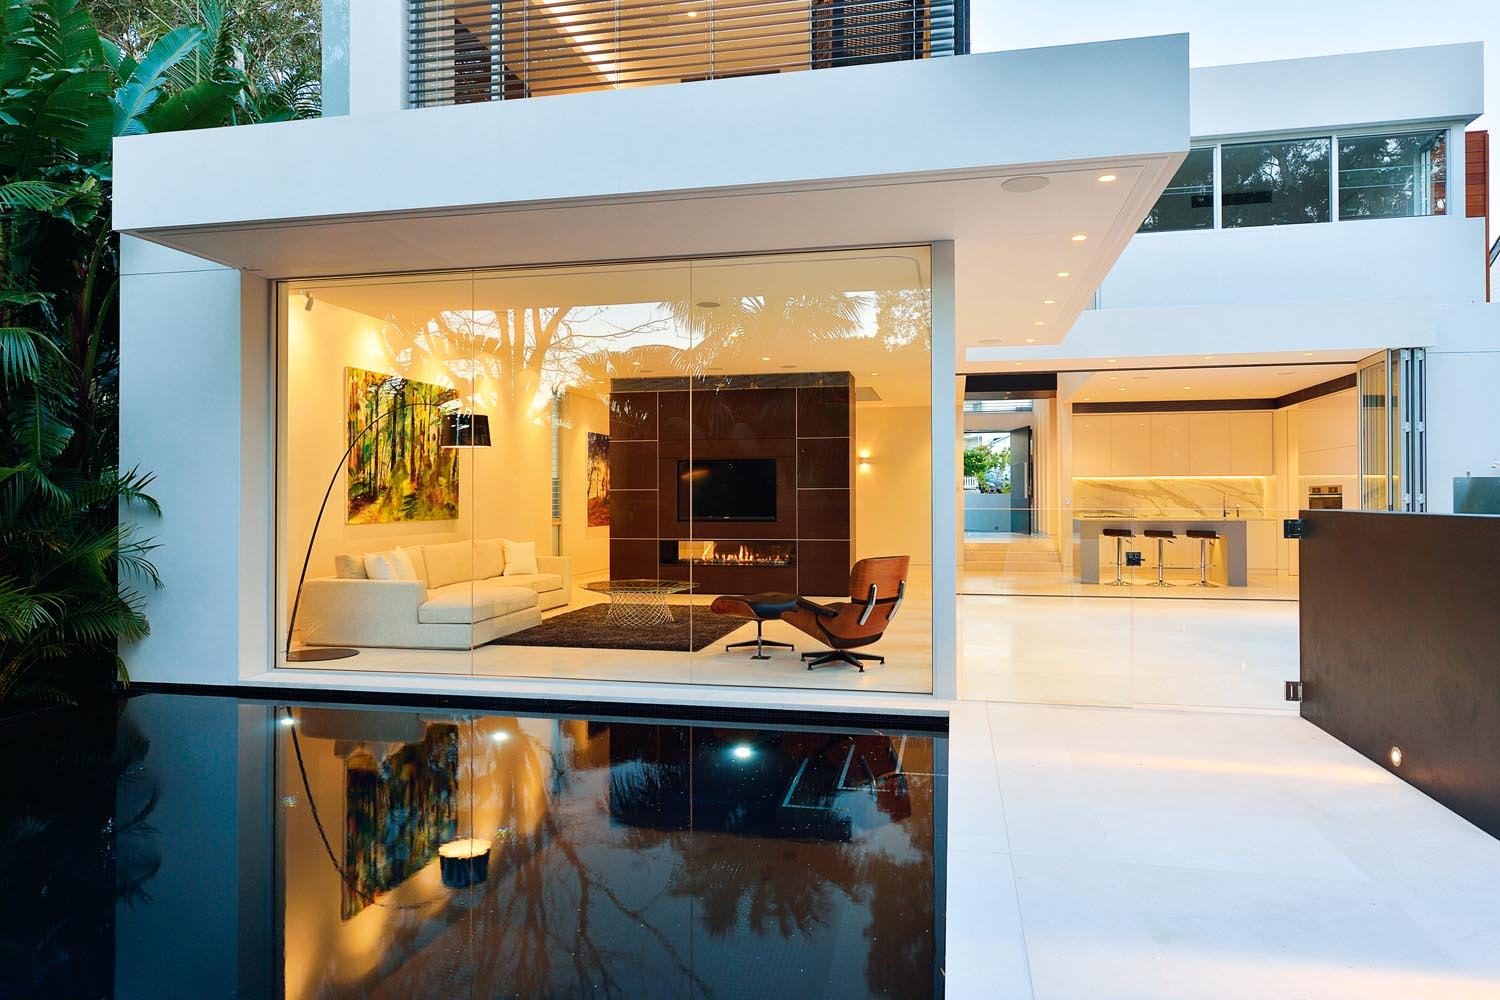 The living and dining areas lead seamlessly out to the pool and outdoor entertaining area